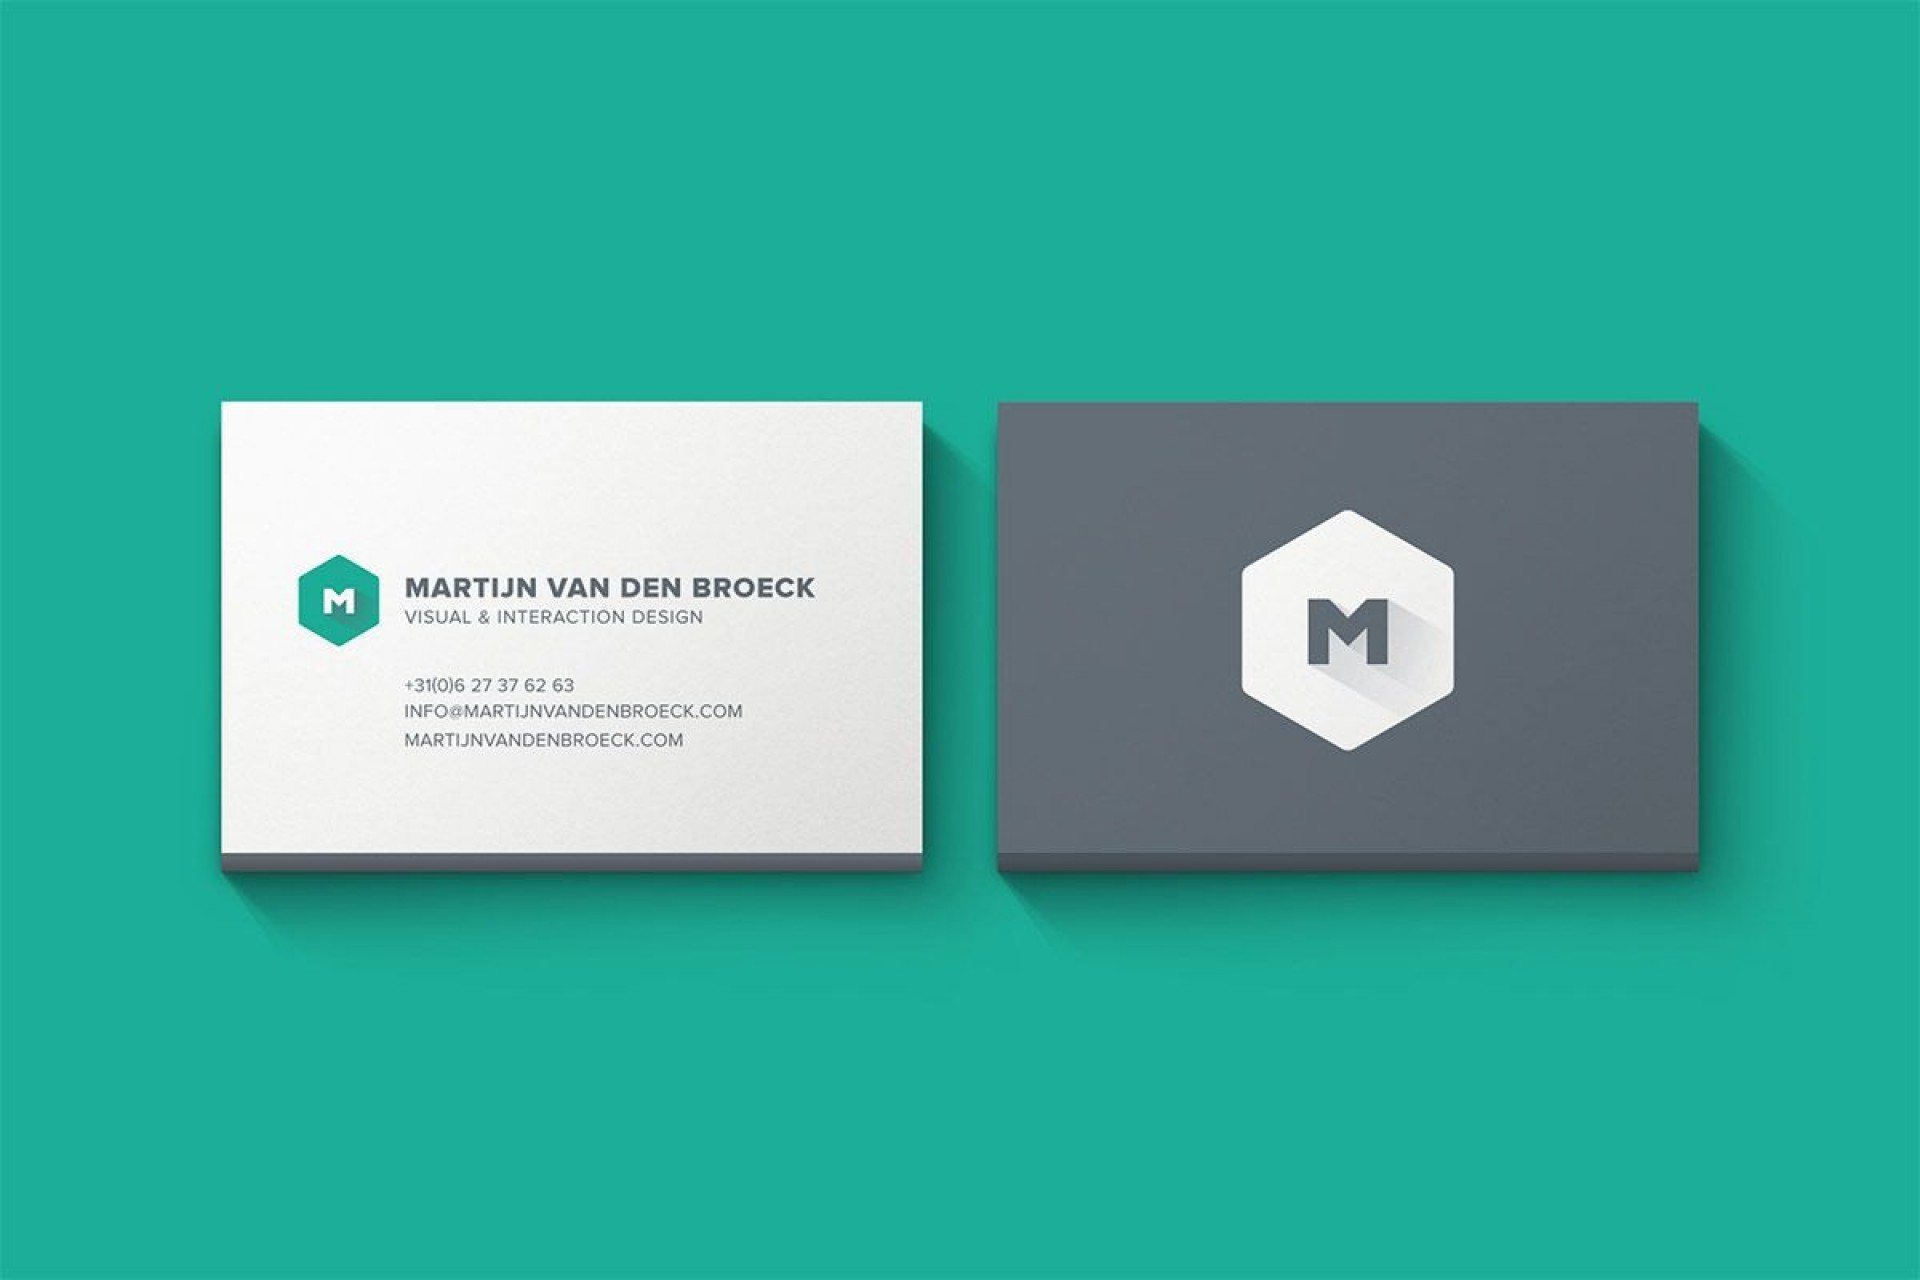 003 Fearsome Minimal Busines Card Template Free High Resolution  Easy Simple Download1920